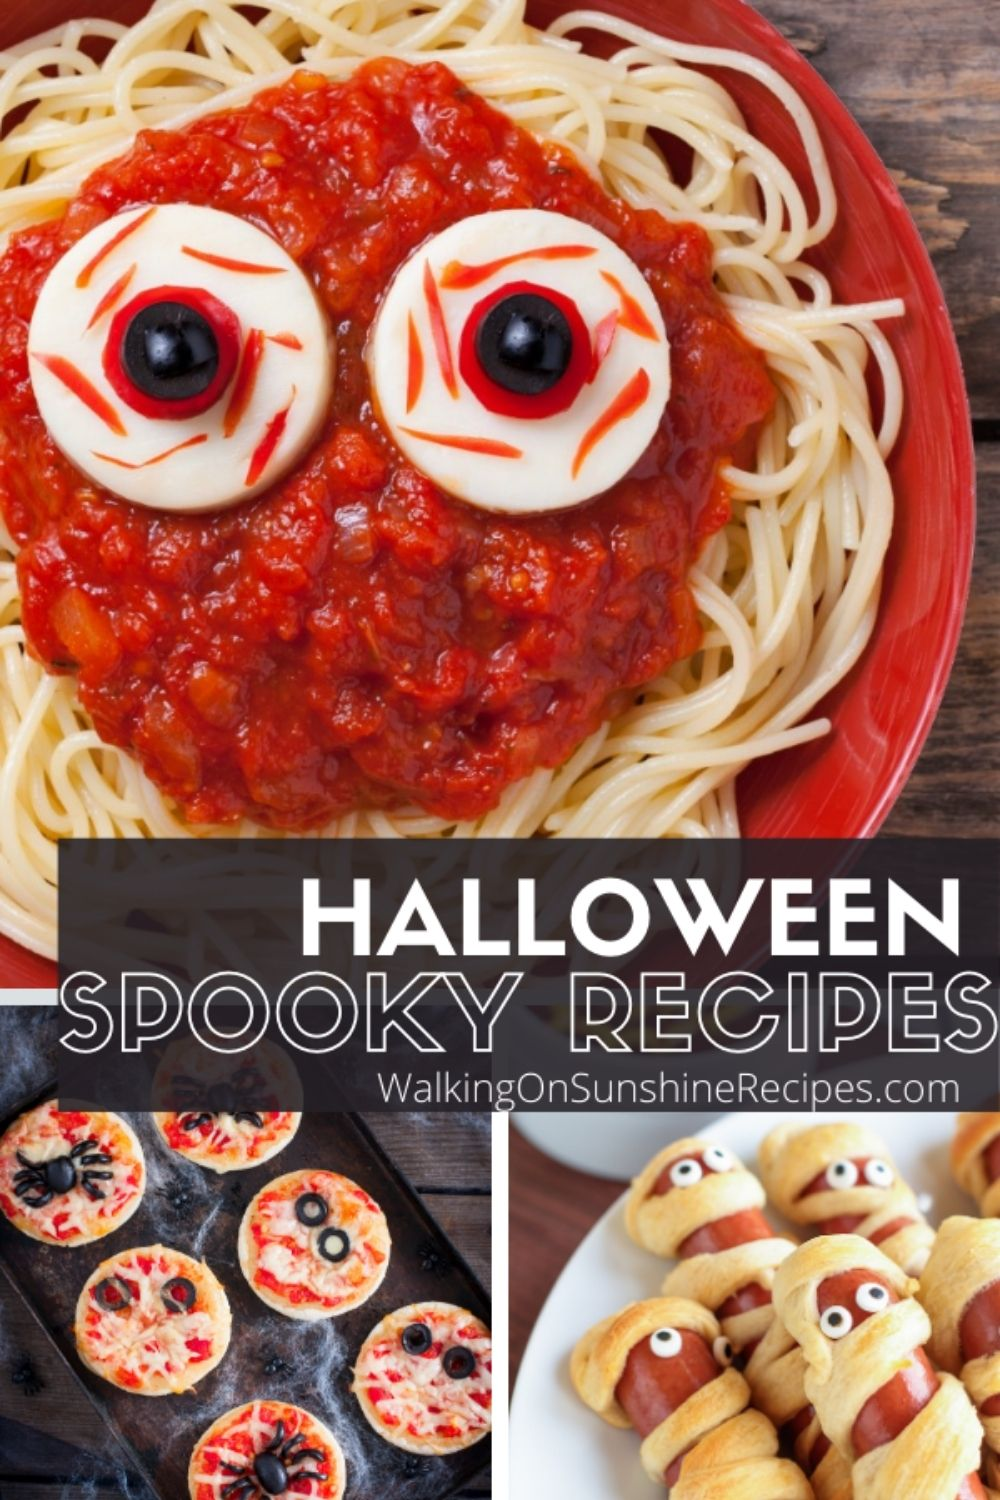 Spaghetti with Ghost Meatballs for Halloween.